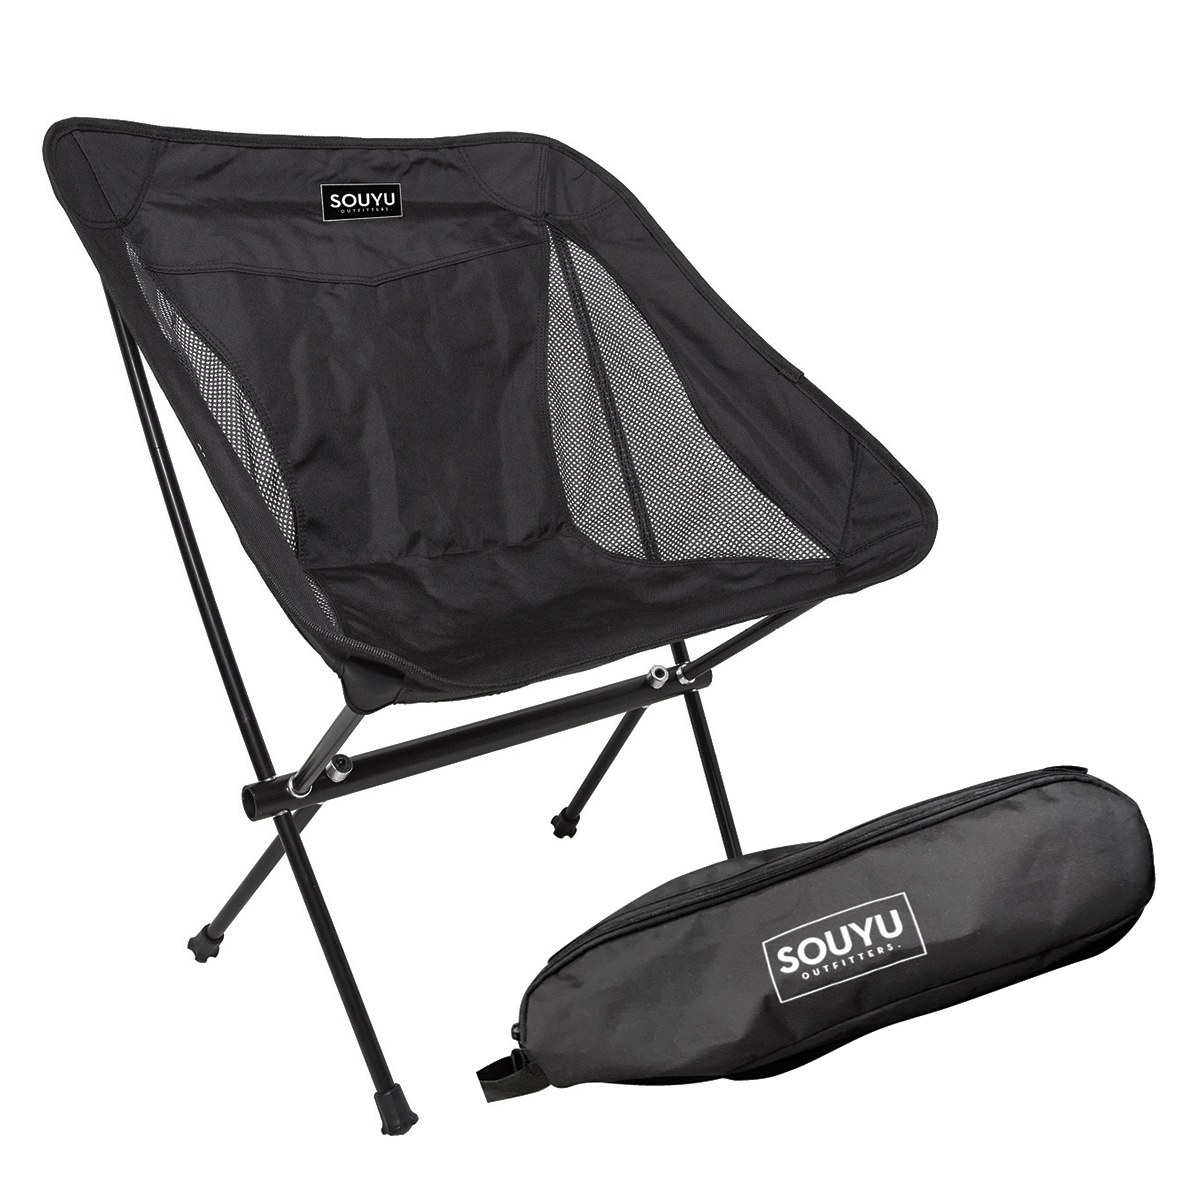 SOUYU OUTFITTERS ソーユーアウトフィッターズ CAMPERLIFE CHAIR